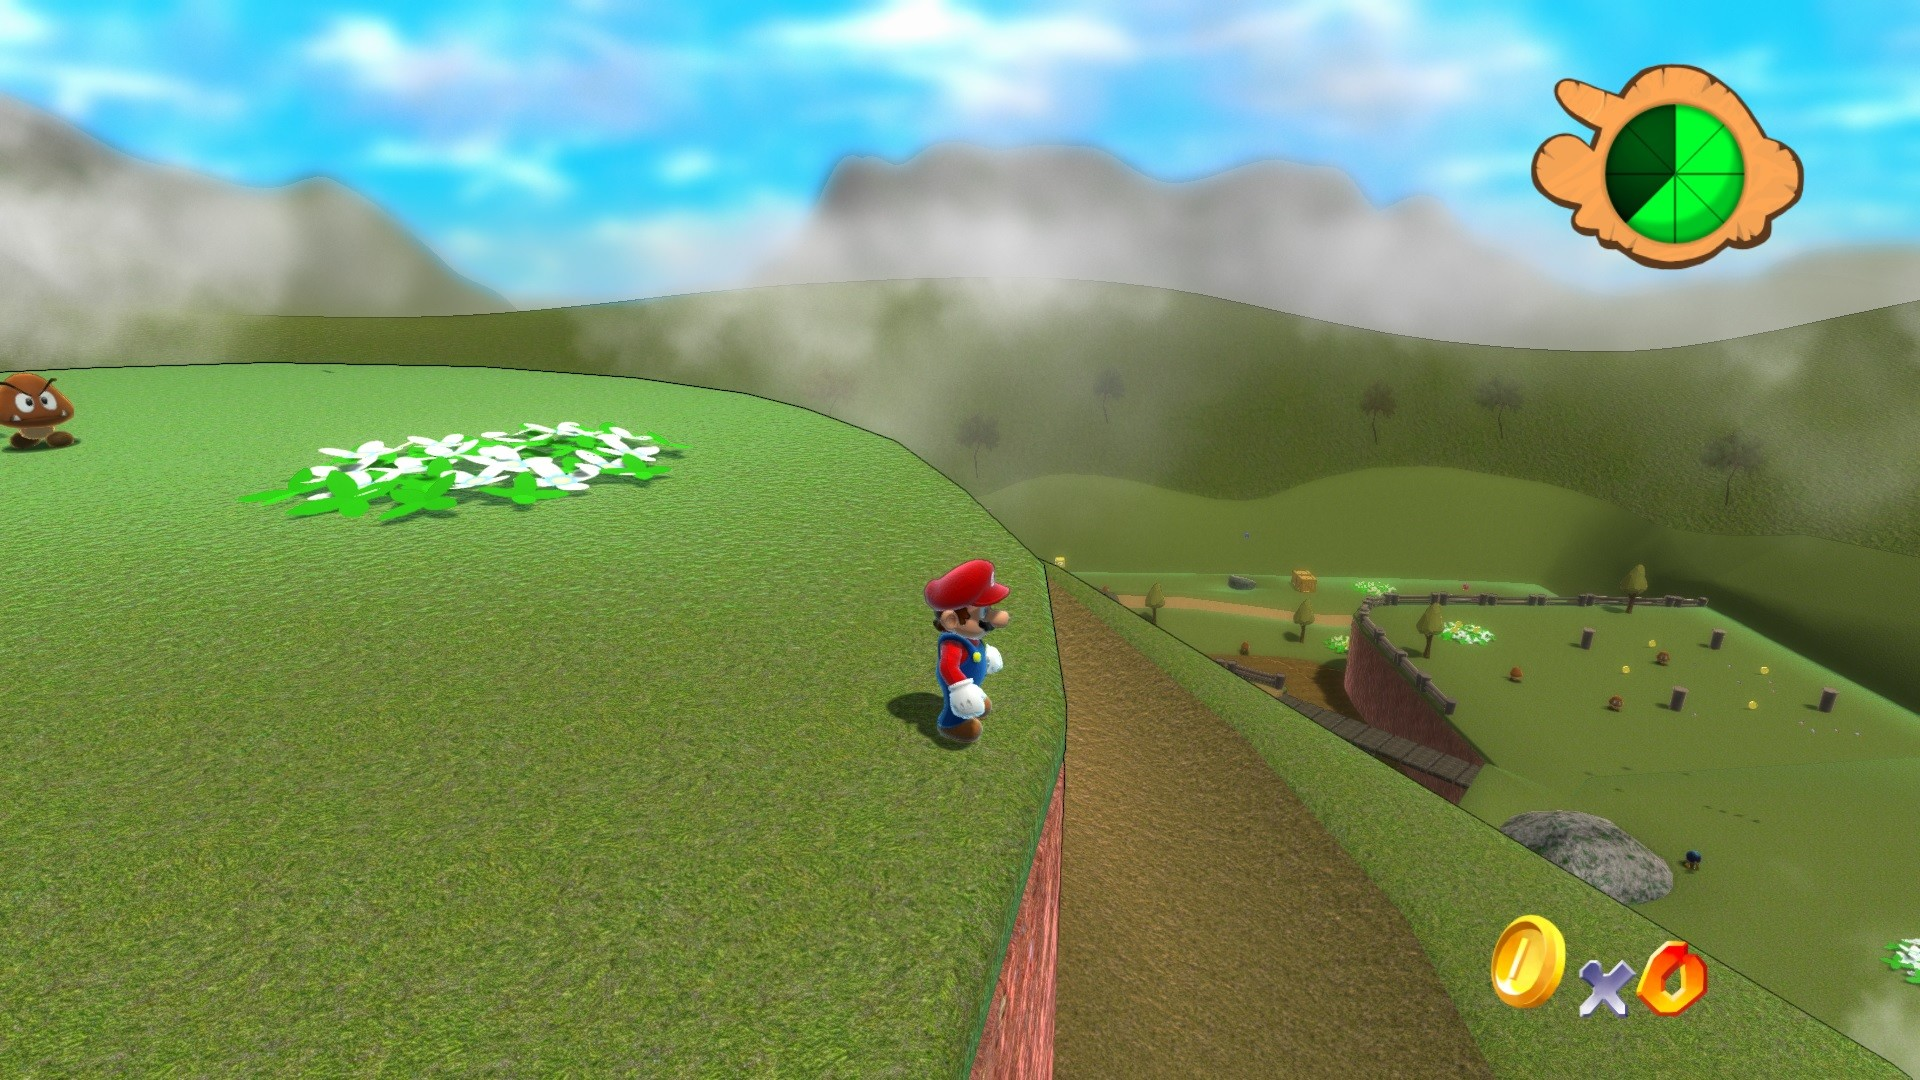 Super Mario 64 HD Unity Remake – New Version Sports HDR, Specular Bump  Mapping & Improved Lighting